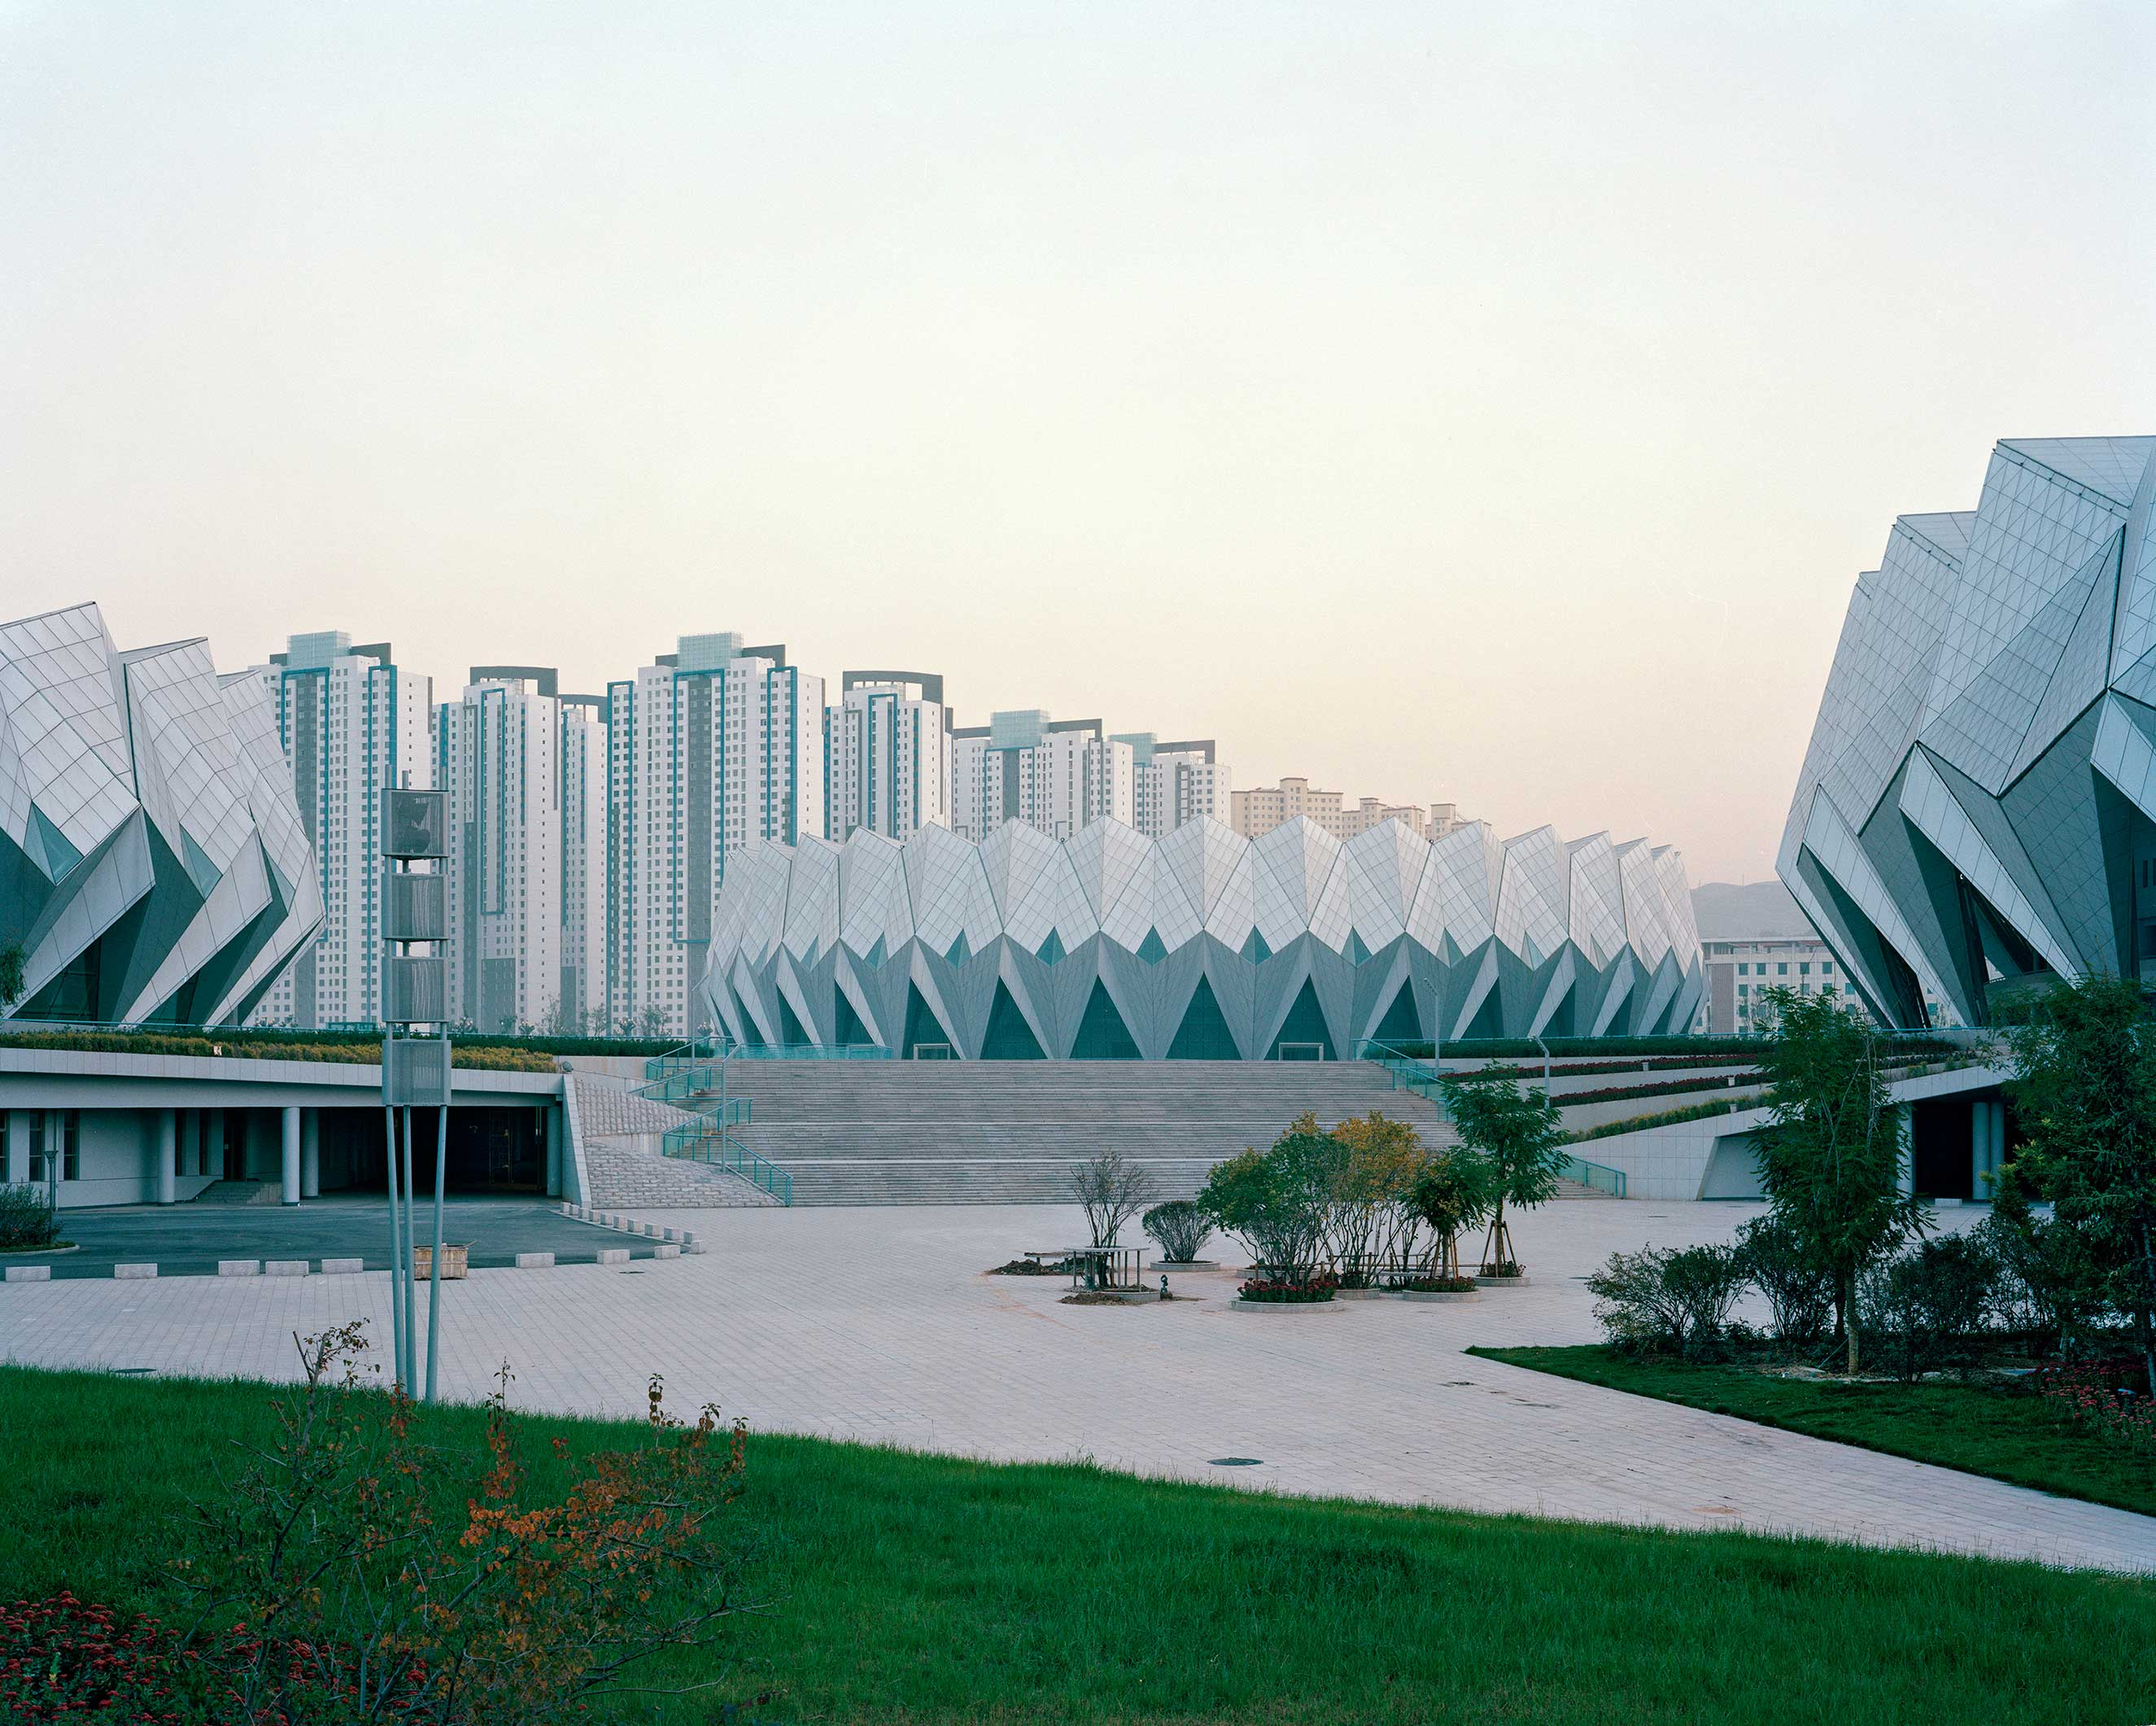 Chengxi district, Xining, Qinghai, China, September 2013. Sports center.